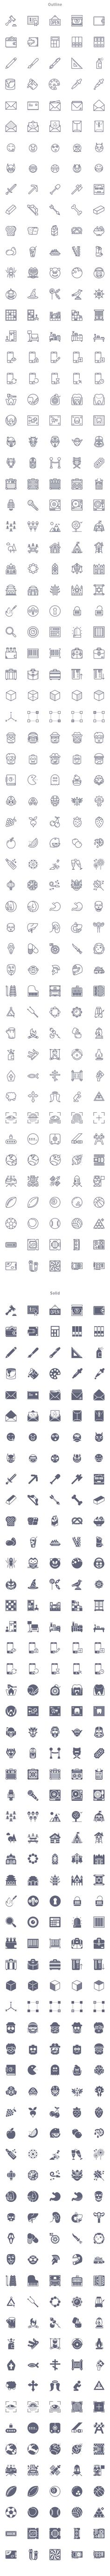 Free Download : Smashicons: 300 Free Icons (outlined, webby, solid and flat)